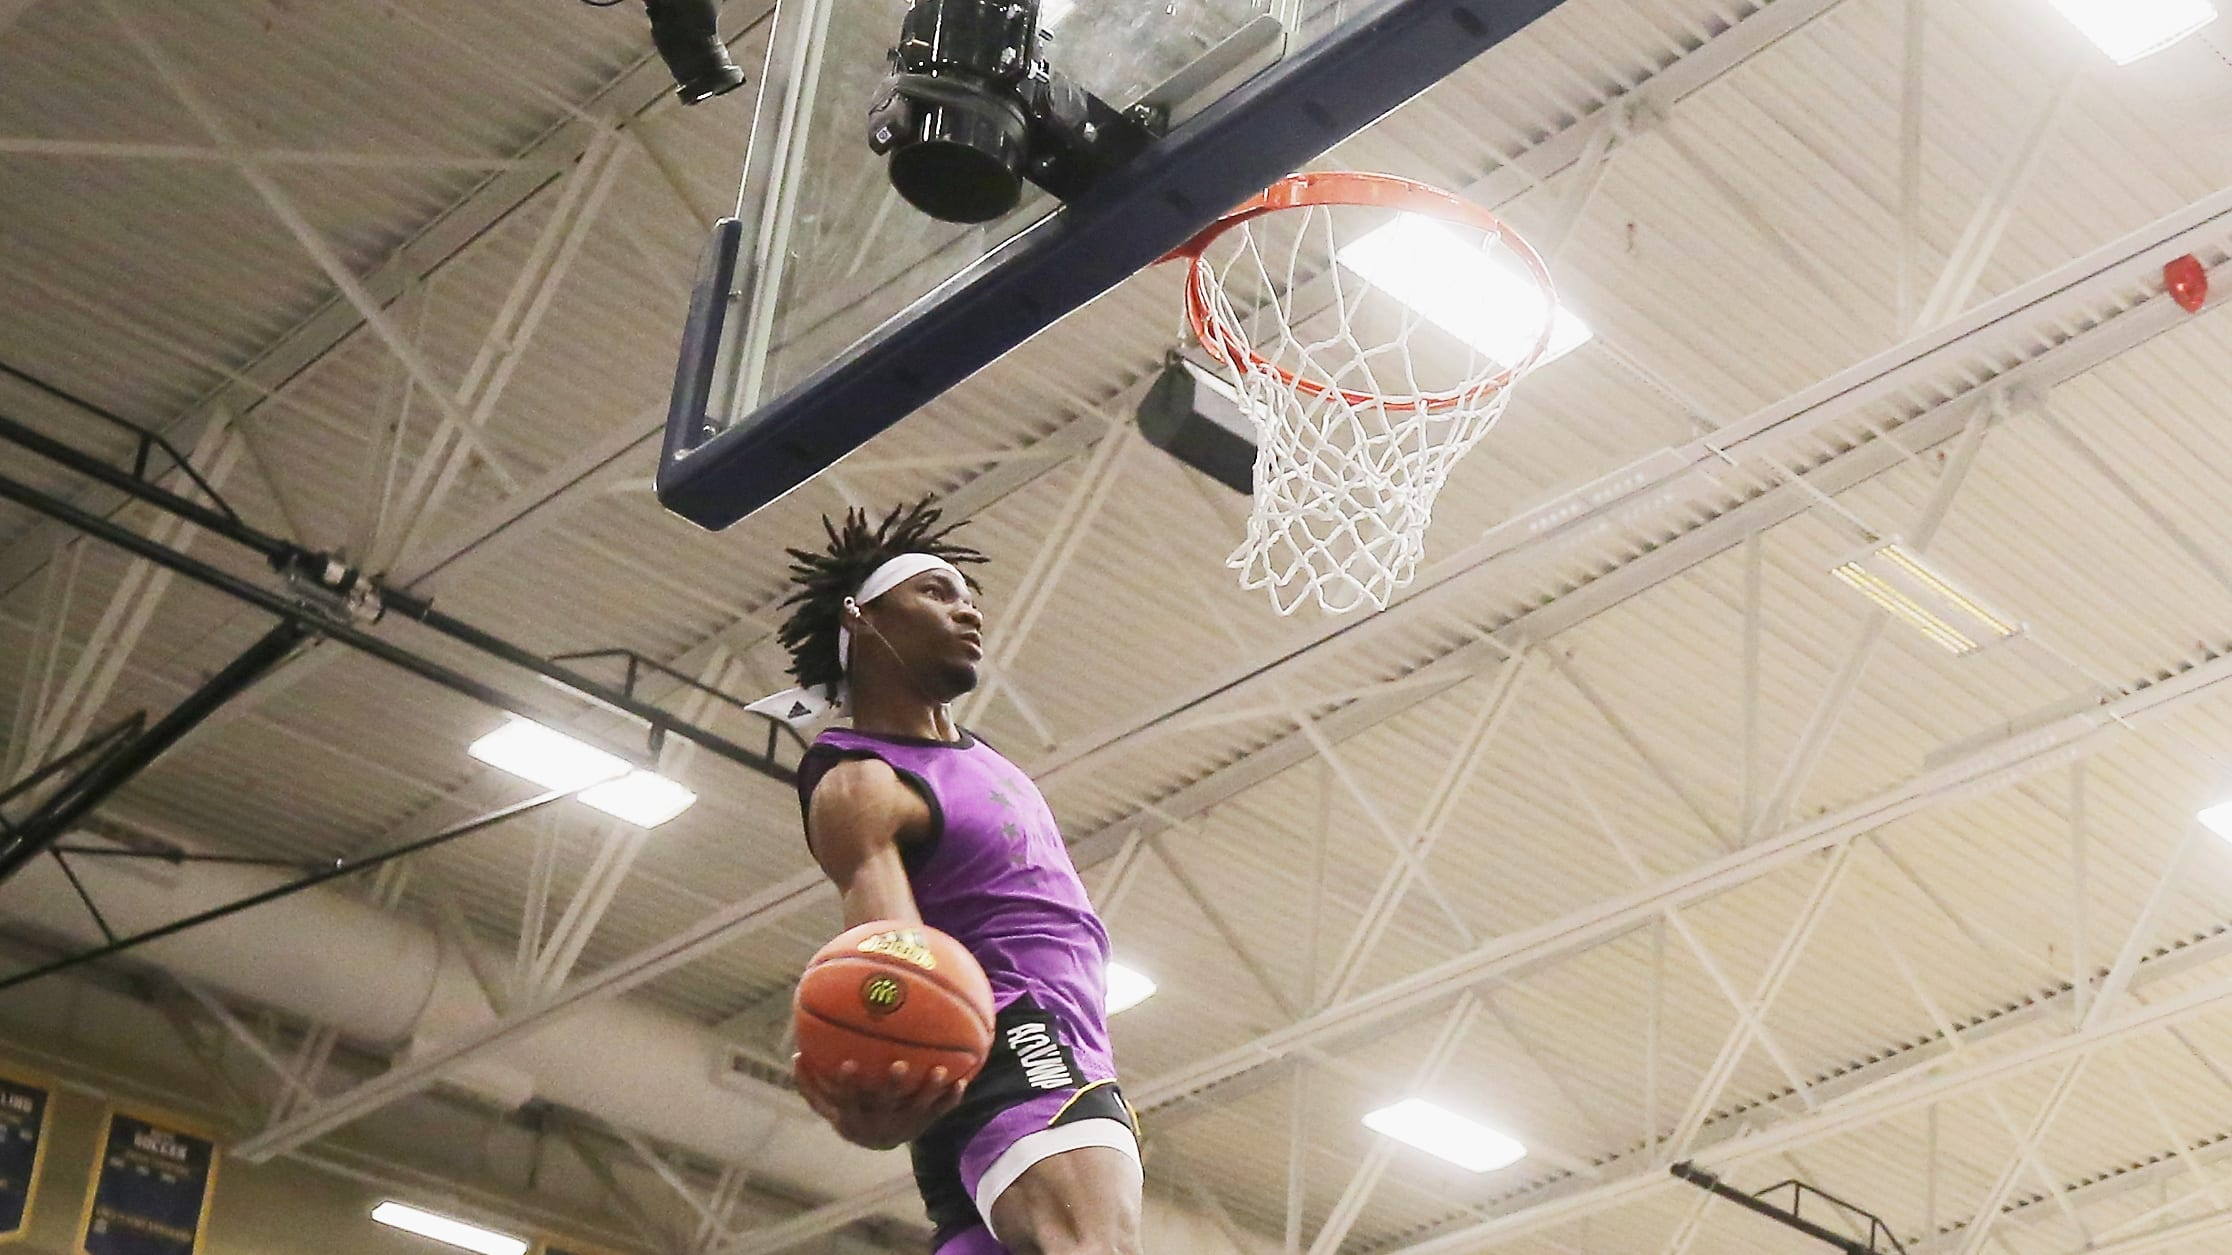 MARIETTA, GA - MARCH 25:  Precious Achiuwa competes in the dunk contest during the 2019 Powerade Jam Fest on March 25, 2019 in Marietta, Georgia.  (Photo by Mike Ehrmann/Getty Images for Powerade)